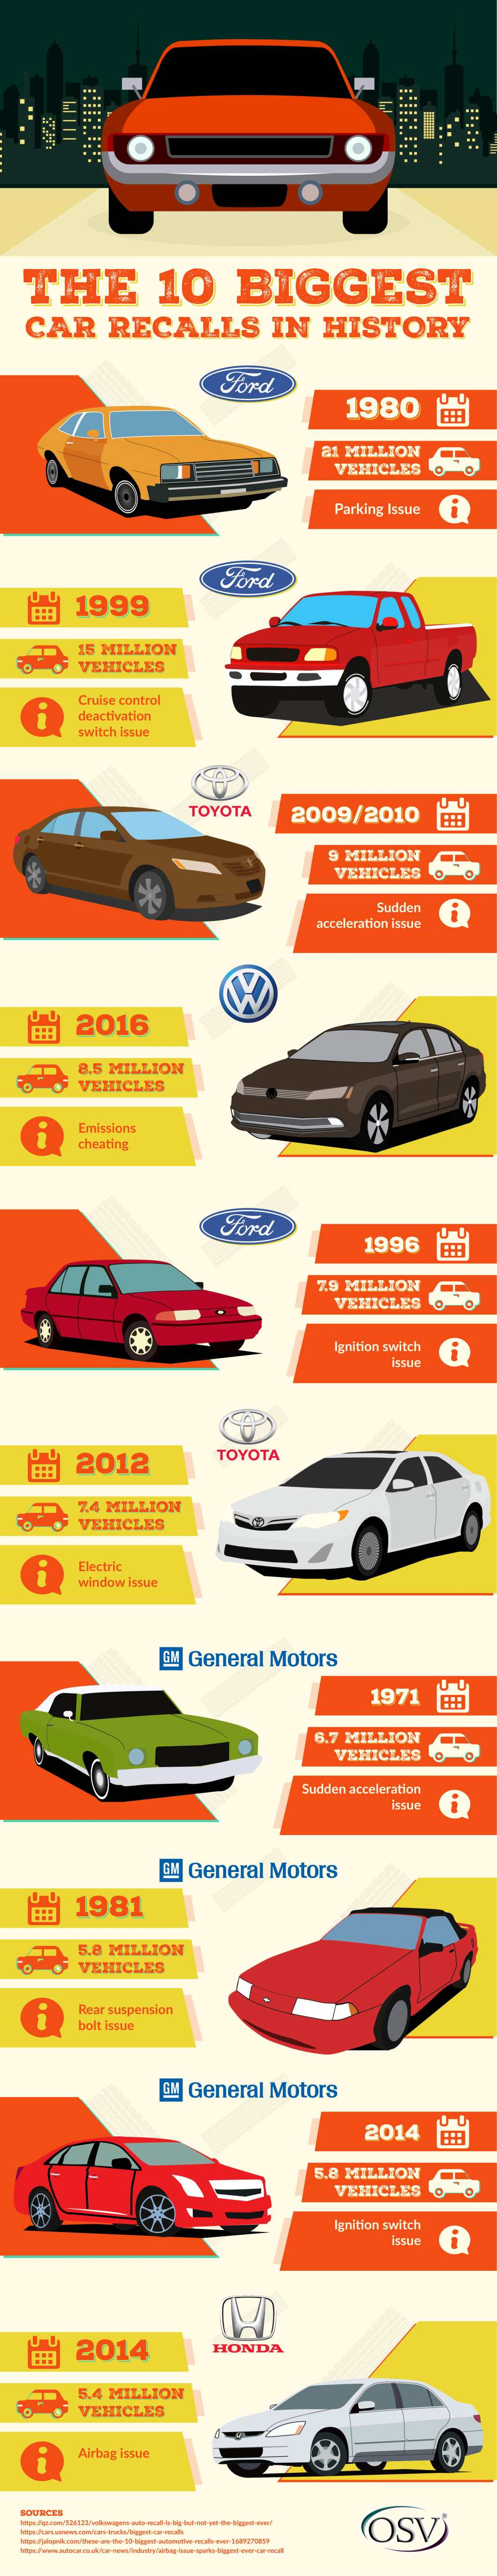 The Top 10 Car Recalls in Automotive History - Infographic